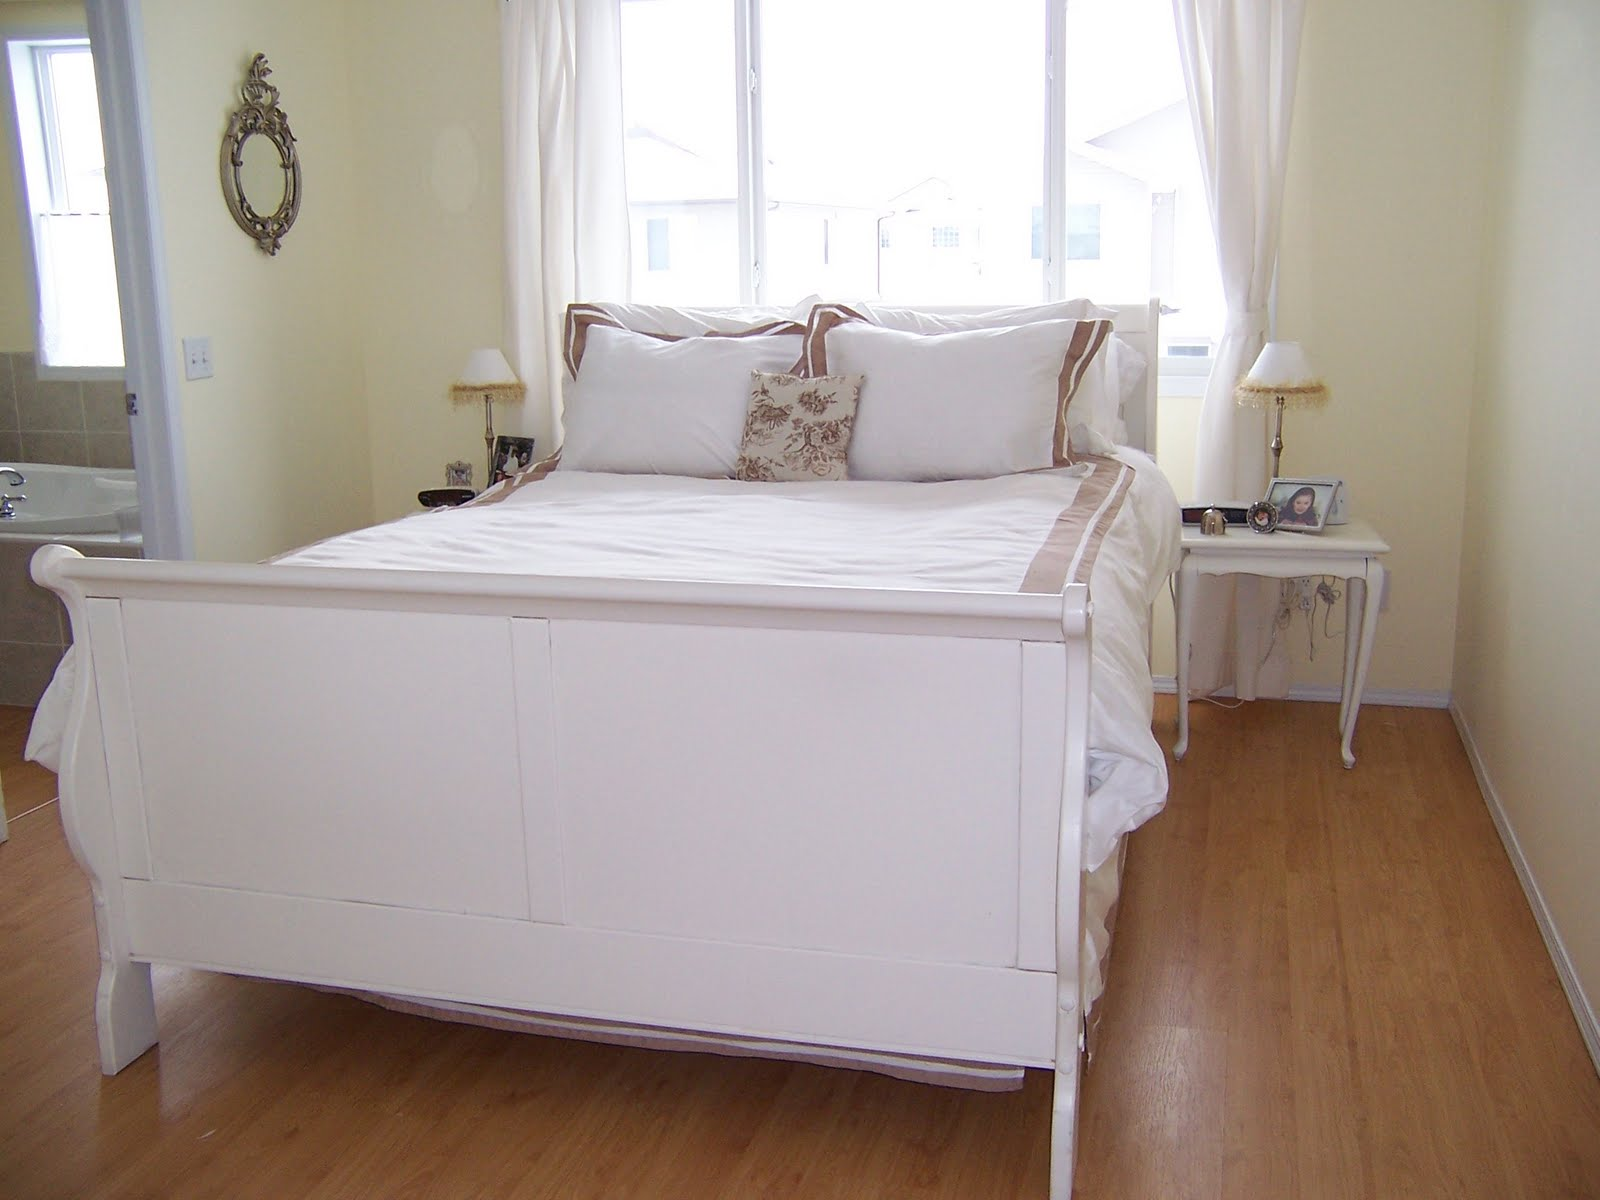 A Shabby Chic Bed